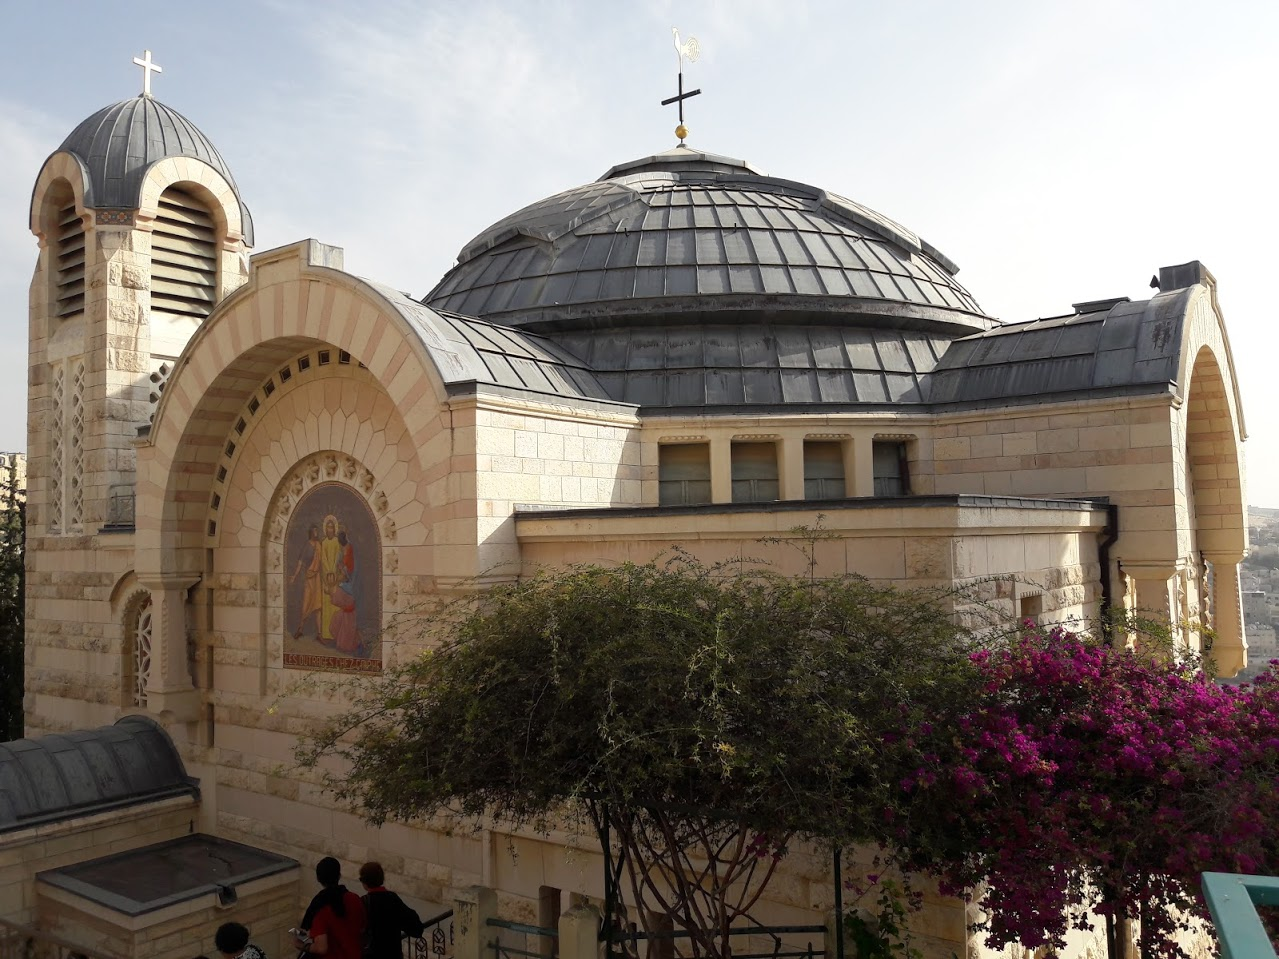 https://communautes-francophones.catholique.fr/wp-content/uploads/sites/14/2018/12/st-pierre-en-gallicante-jerusalem.jpg